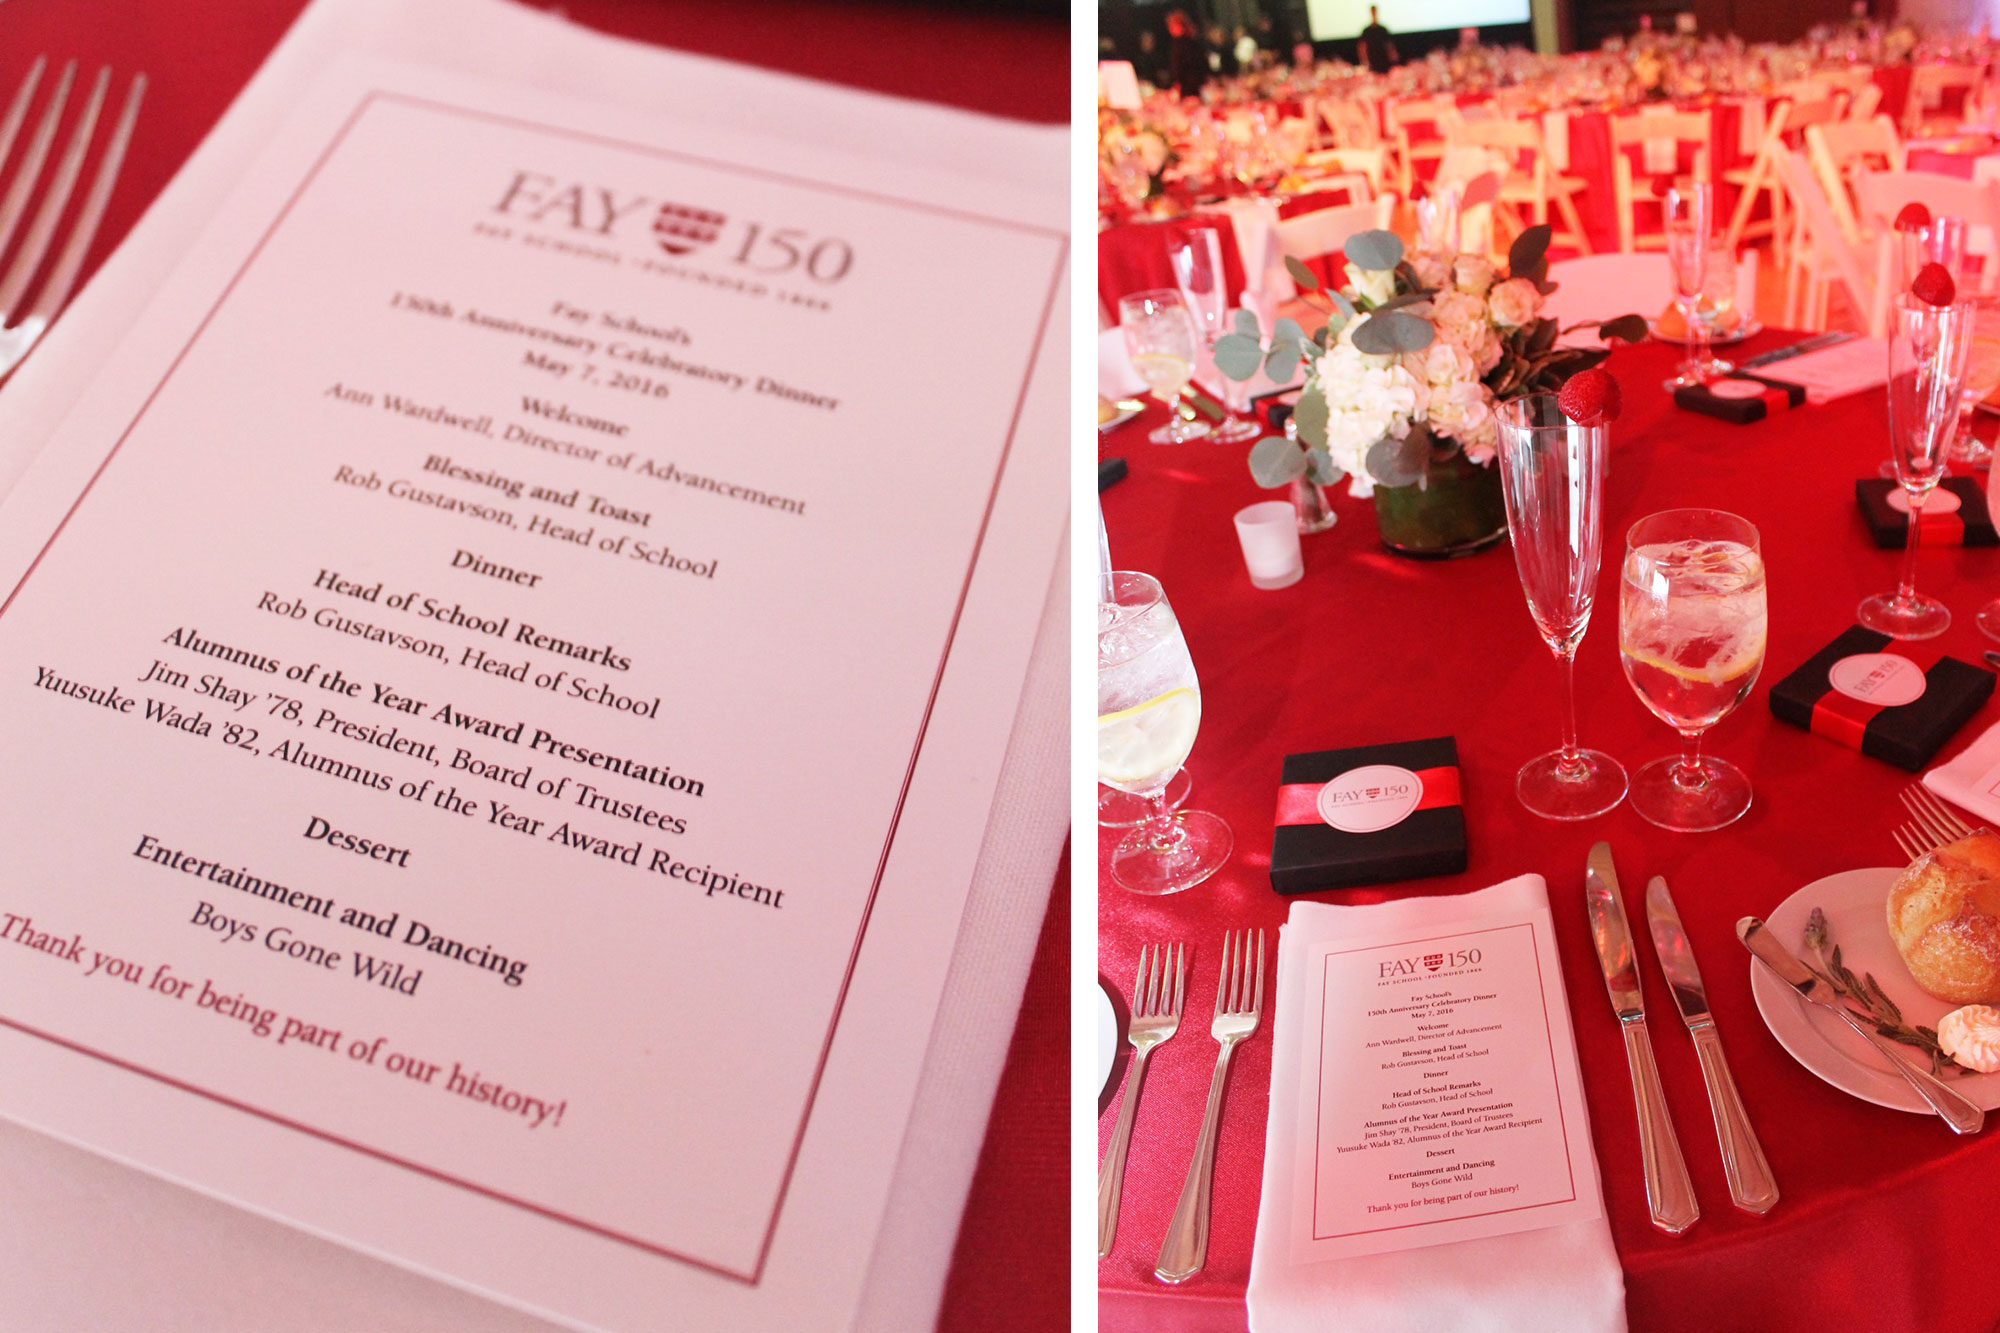 Fay School 150th Anniversary Gala